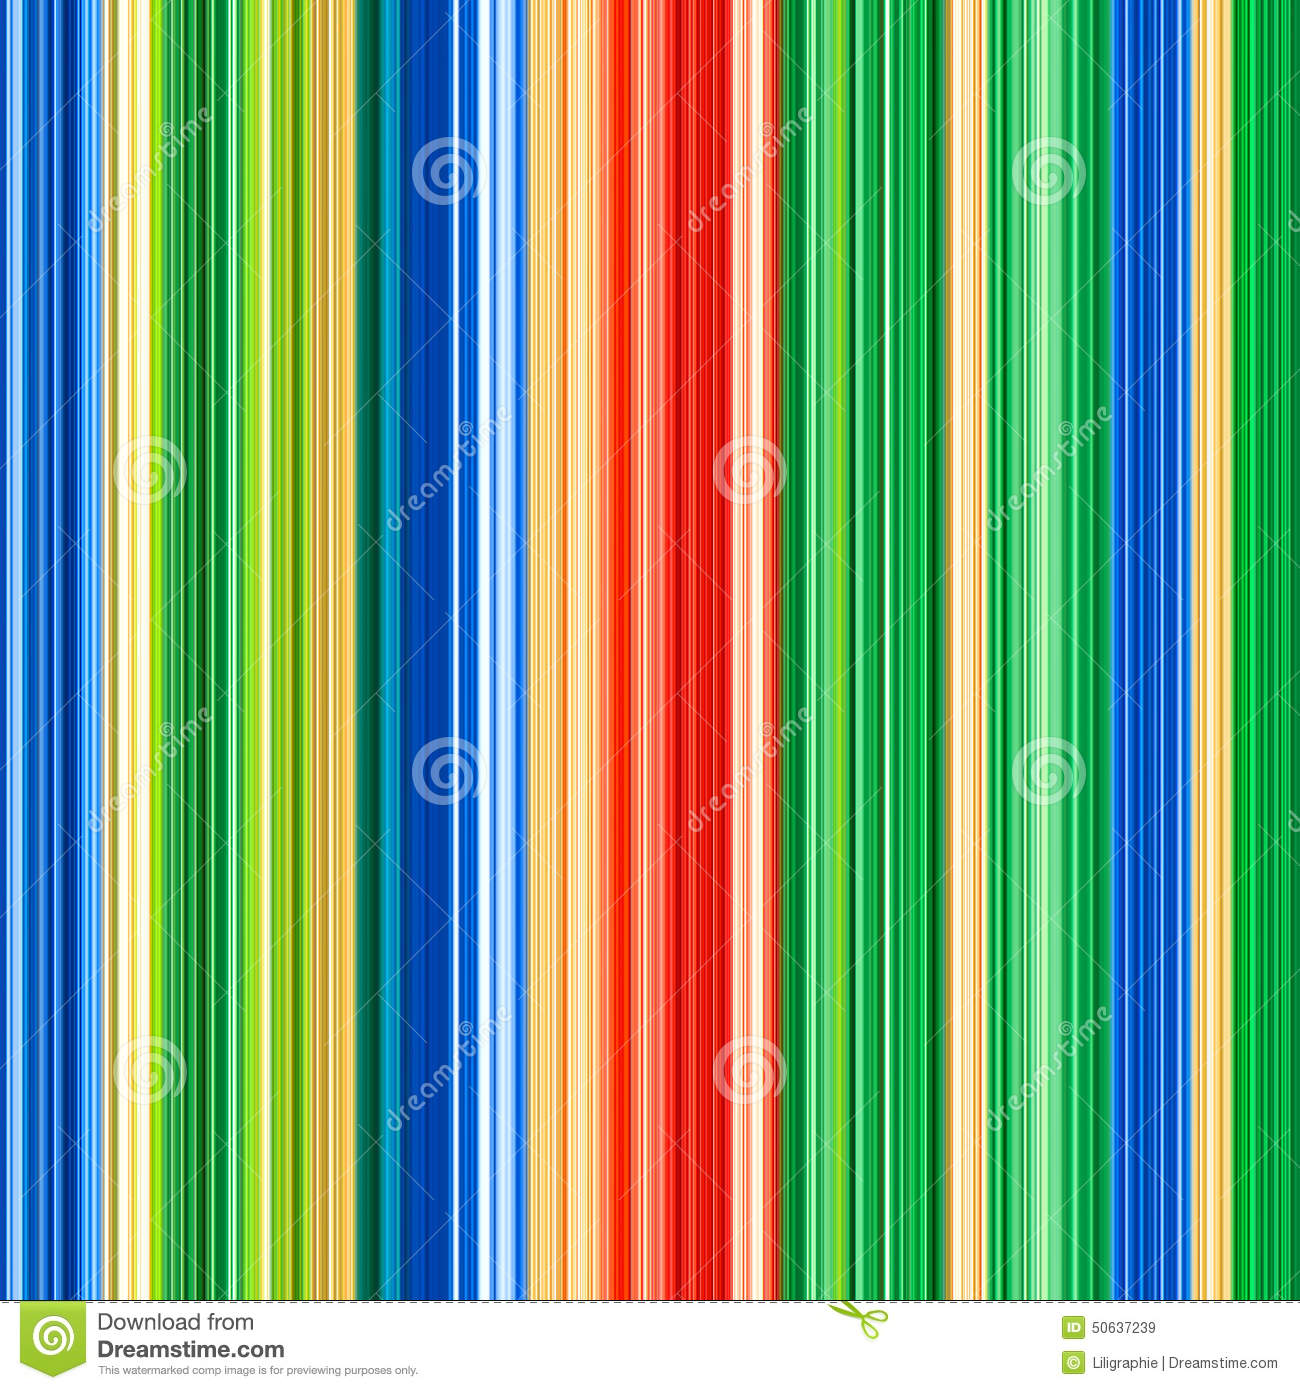 Striped background abstract lines design pattern stock for Bright vibrant colors